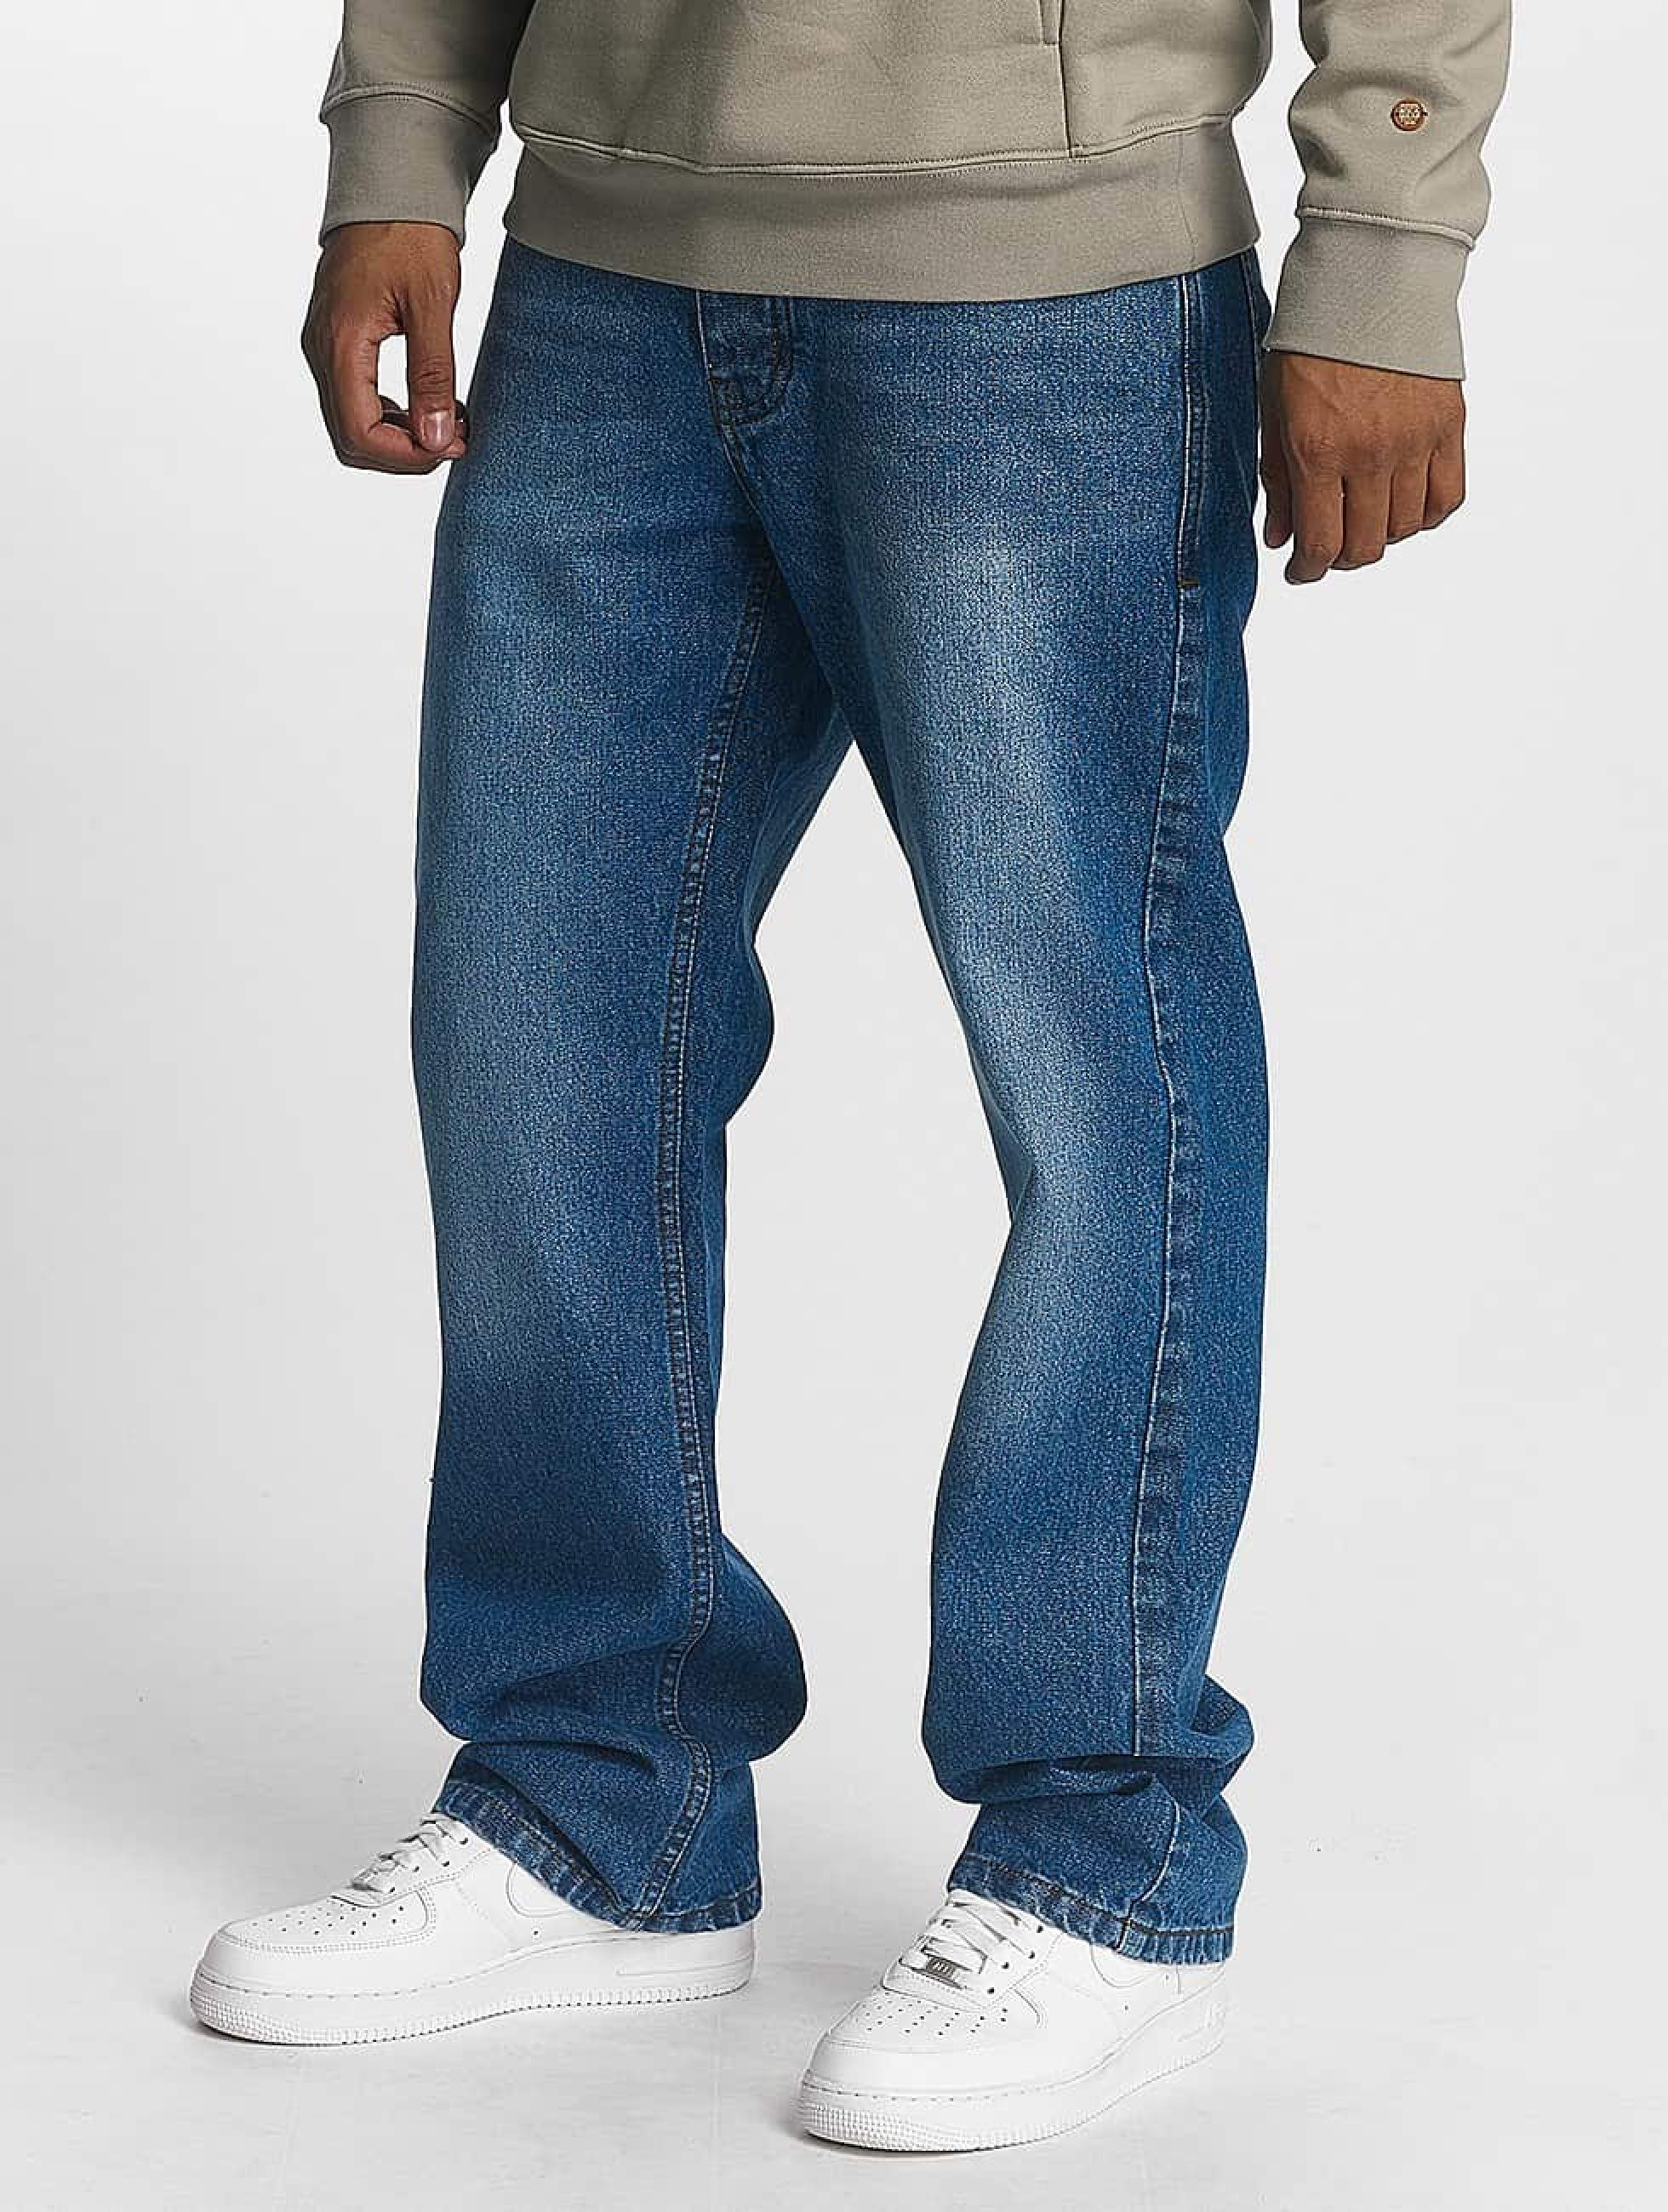 Rocawear / Loose Fit Jeans 90TH in blue W 38